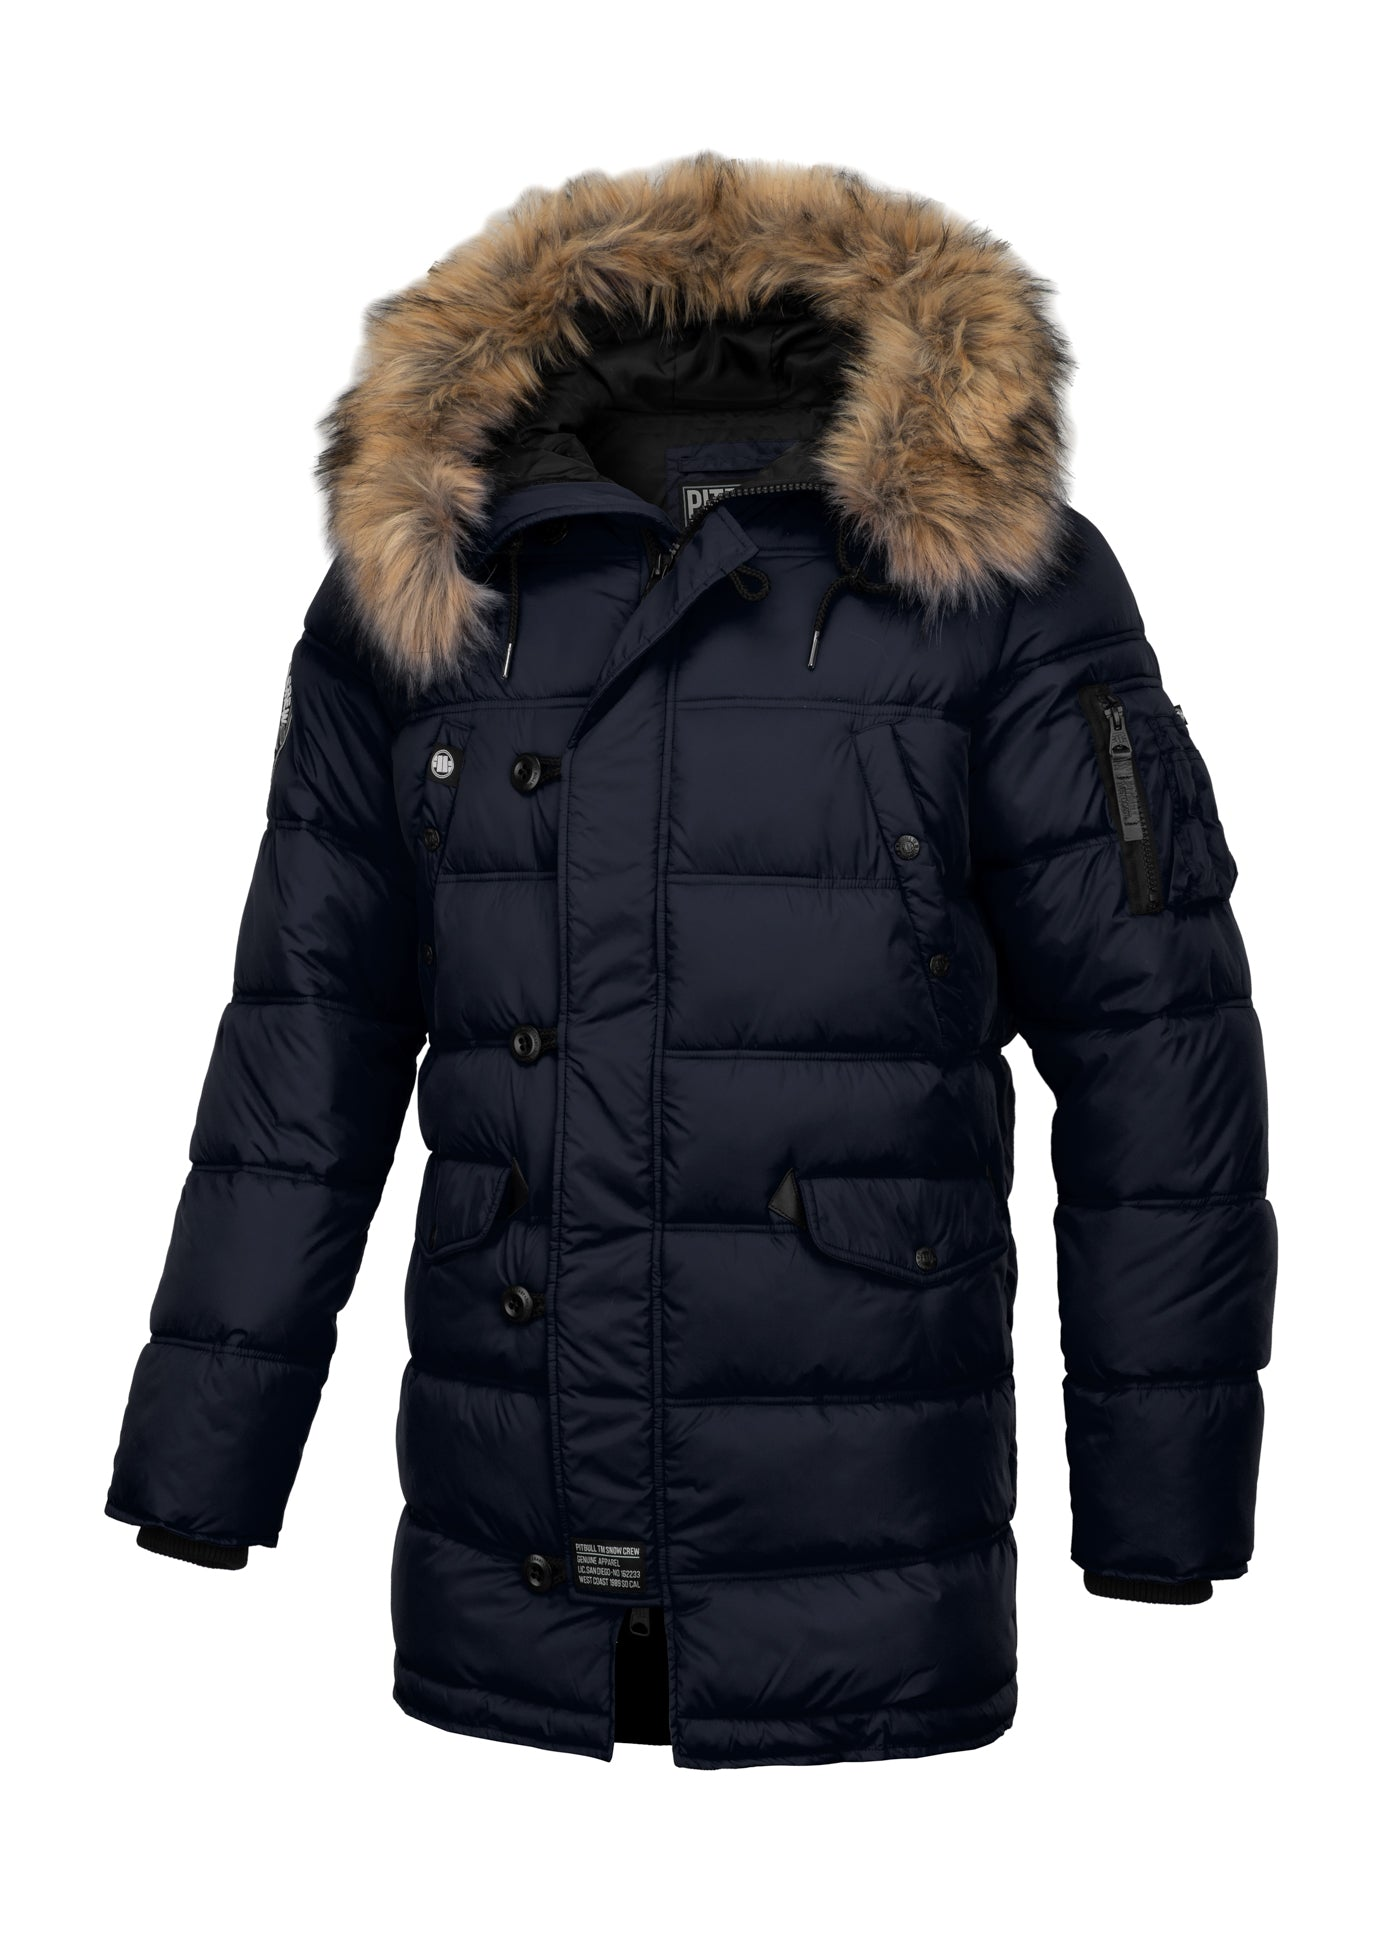 Parka Jacket KINGSTON Dark Navy - Pitbull West Coast  UK Store